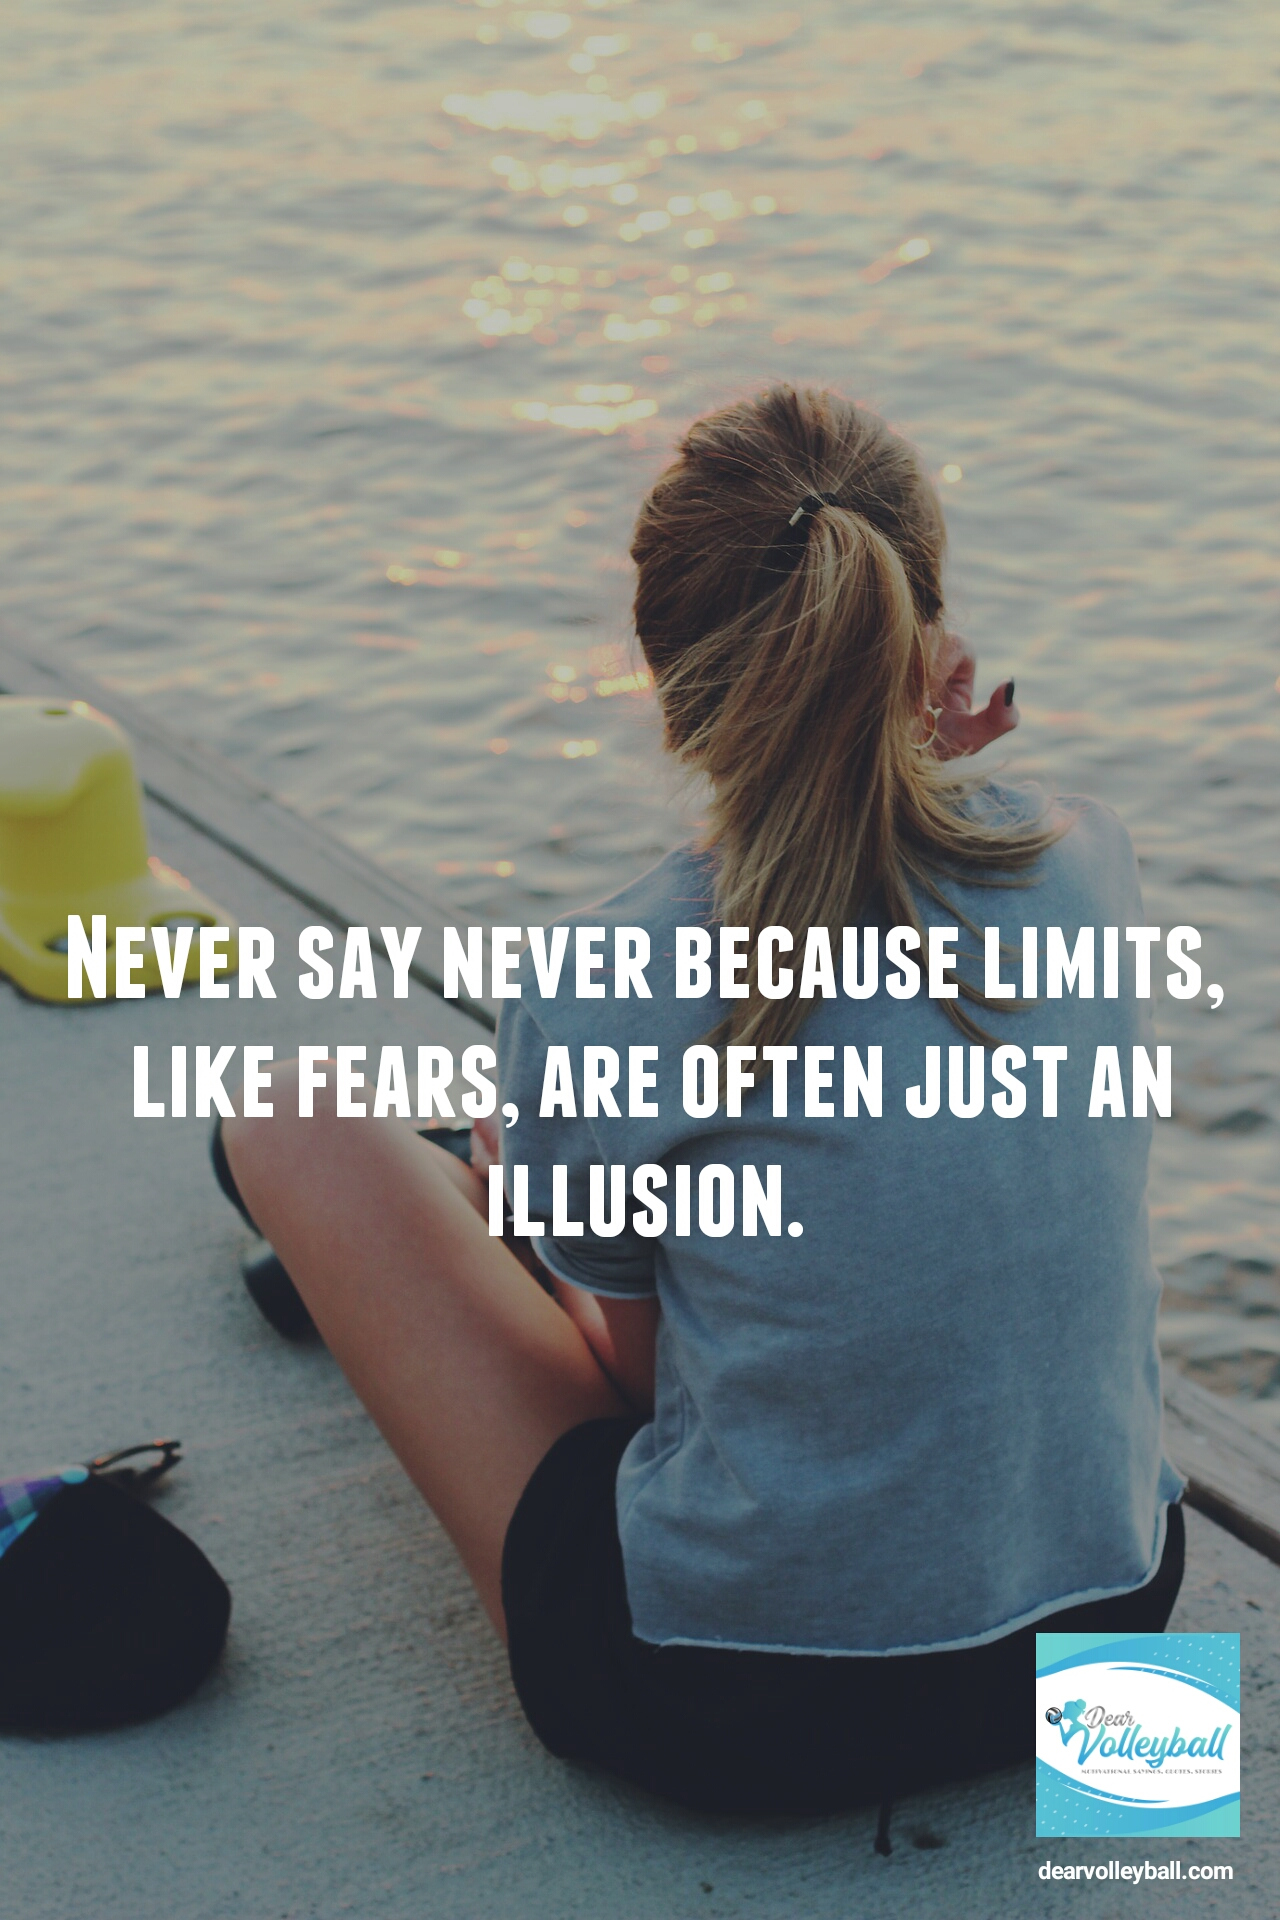 Never say never because limits like fears are just an illusion and other encouragement quotes on DearVolleyball.com